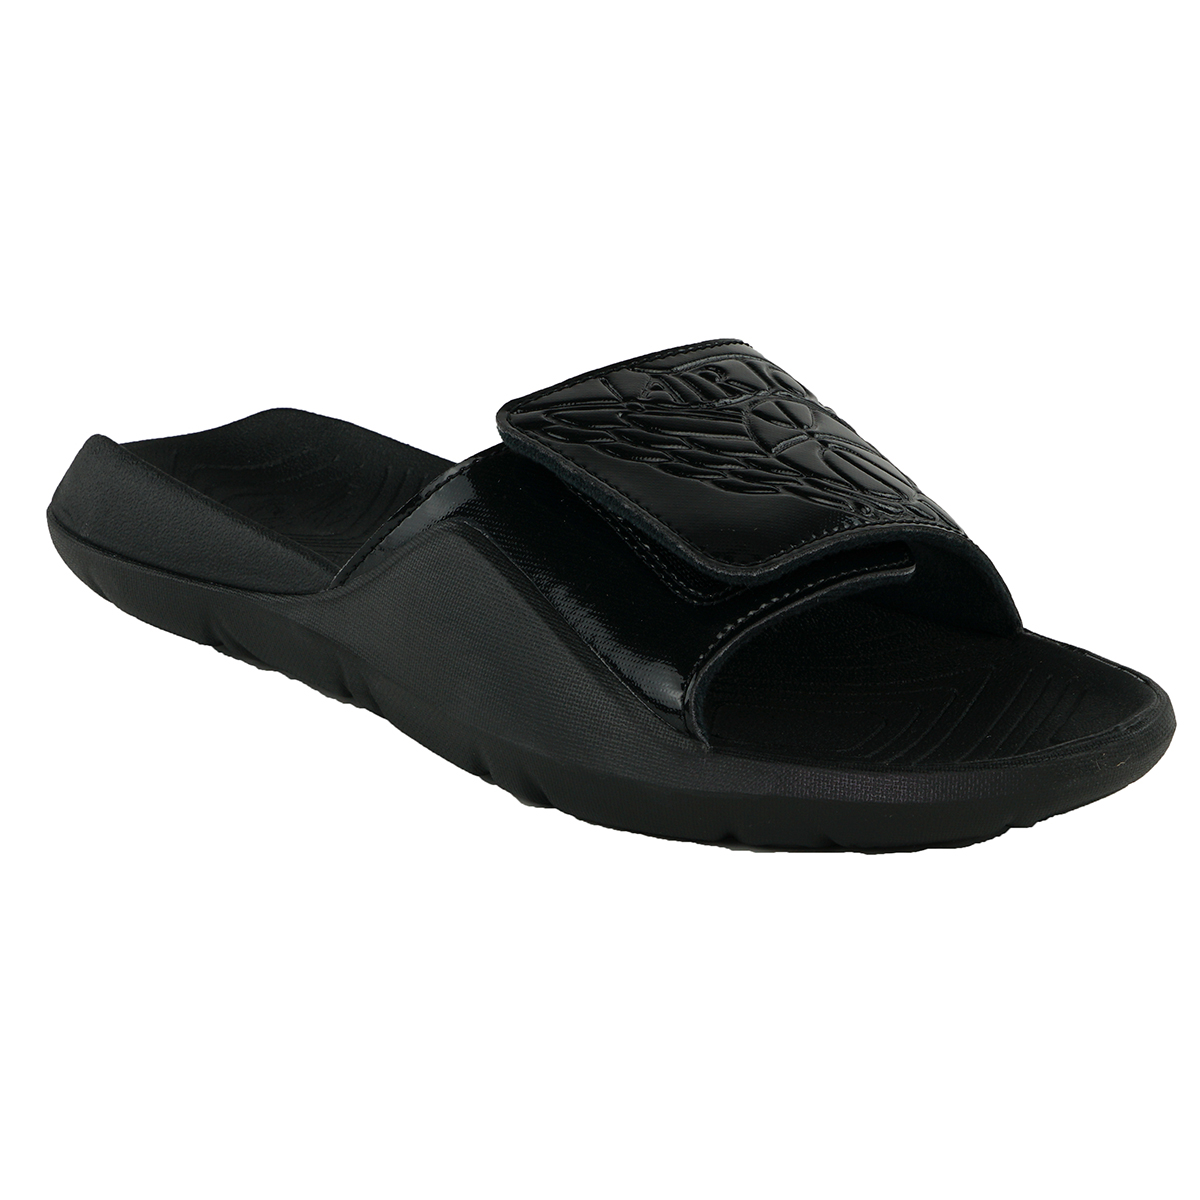 224de2ba0de5 Air Jordan Men s Hydro 7 Slide Sandals Black Black 11 884498883549 ...